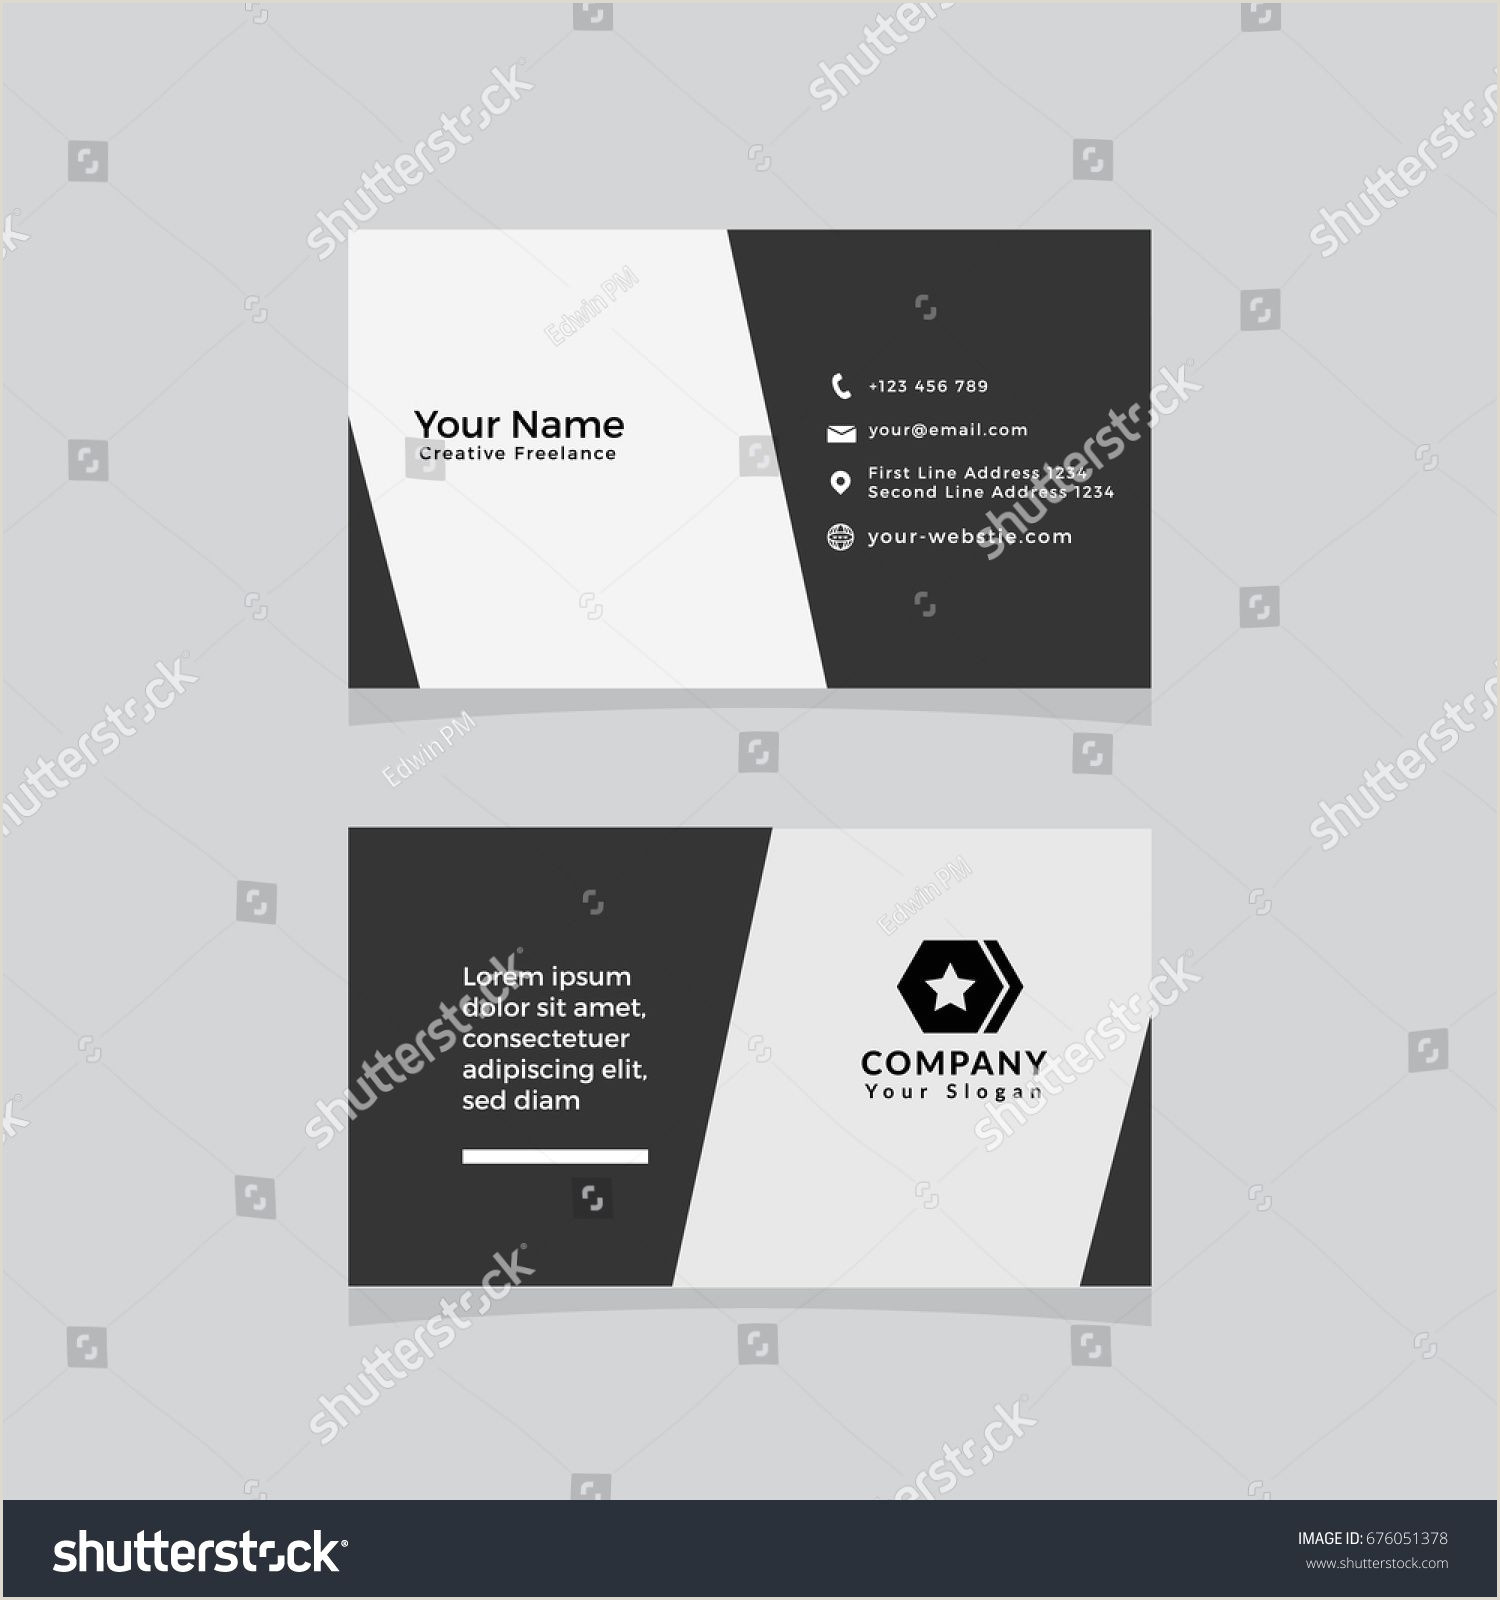 How To Make Front And Back Business Cards In Word Pin By Make Future It On Business Card Design